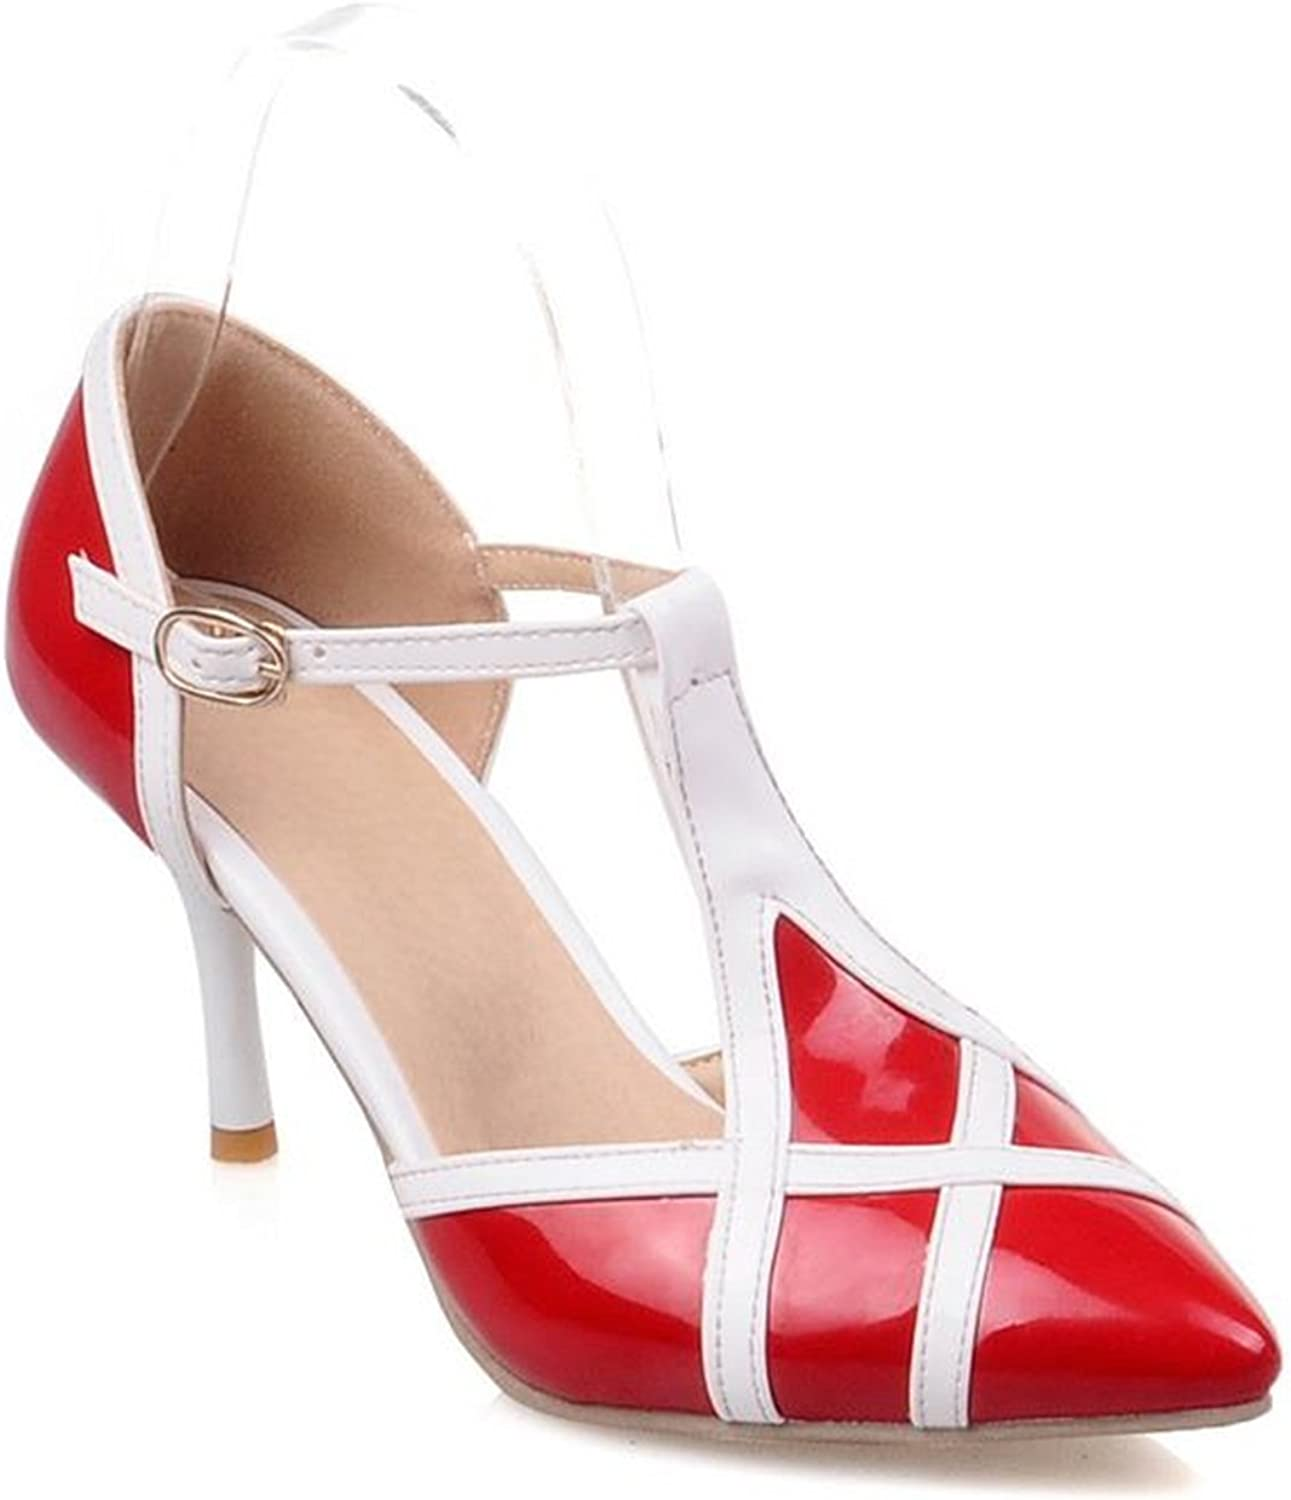 Carlos Foushee Plus Size 34-46 Fashion Stiletto High Heels T Strap Women Pumps Mixed color Pointed Toe Sweet Party Wedding shoes